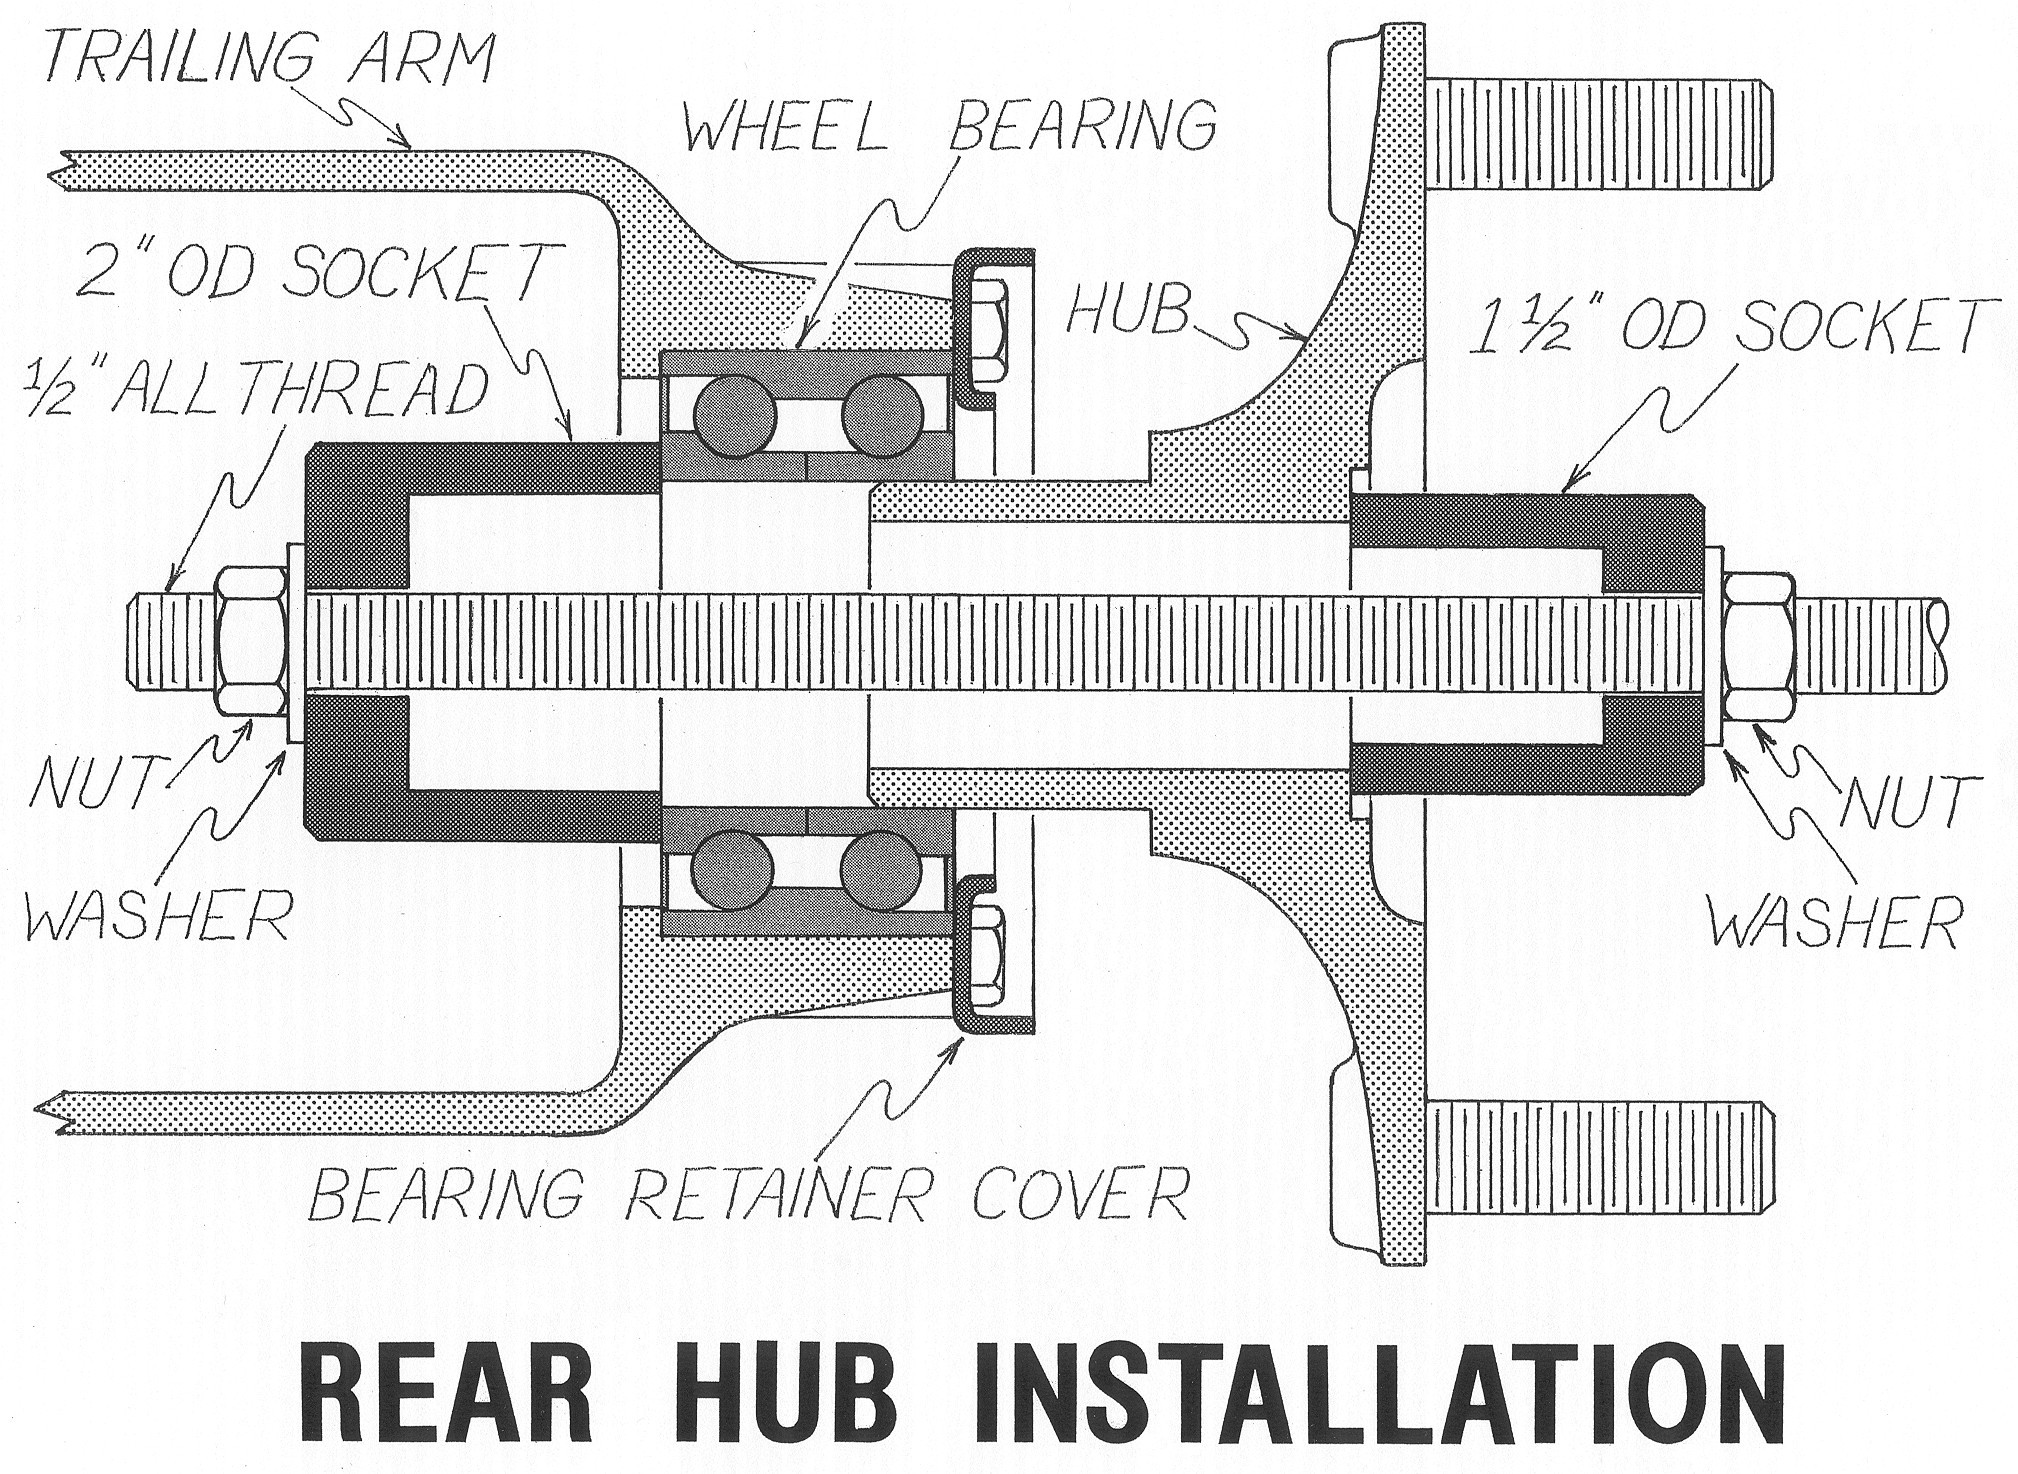 Porsche 944 Engine Diagram Pelican Technical Article 914 Five Bolt Pattern Conversion Of Porsche 944 Engine Diagram